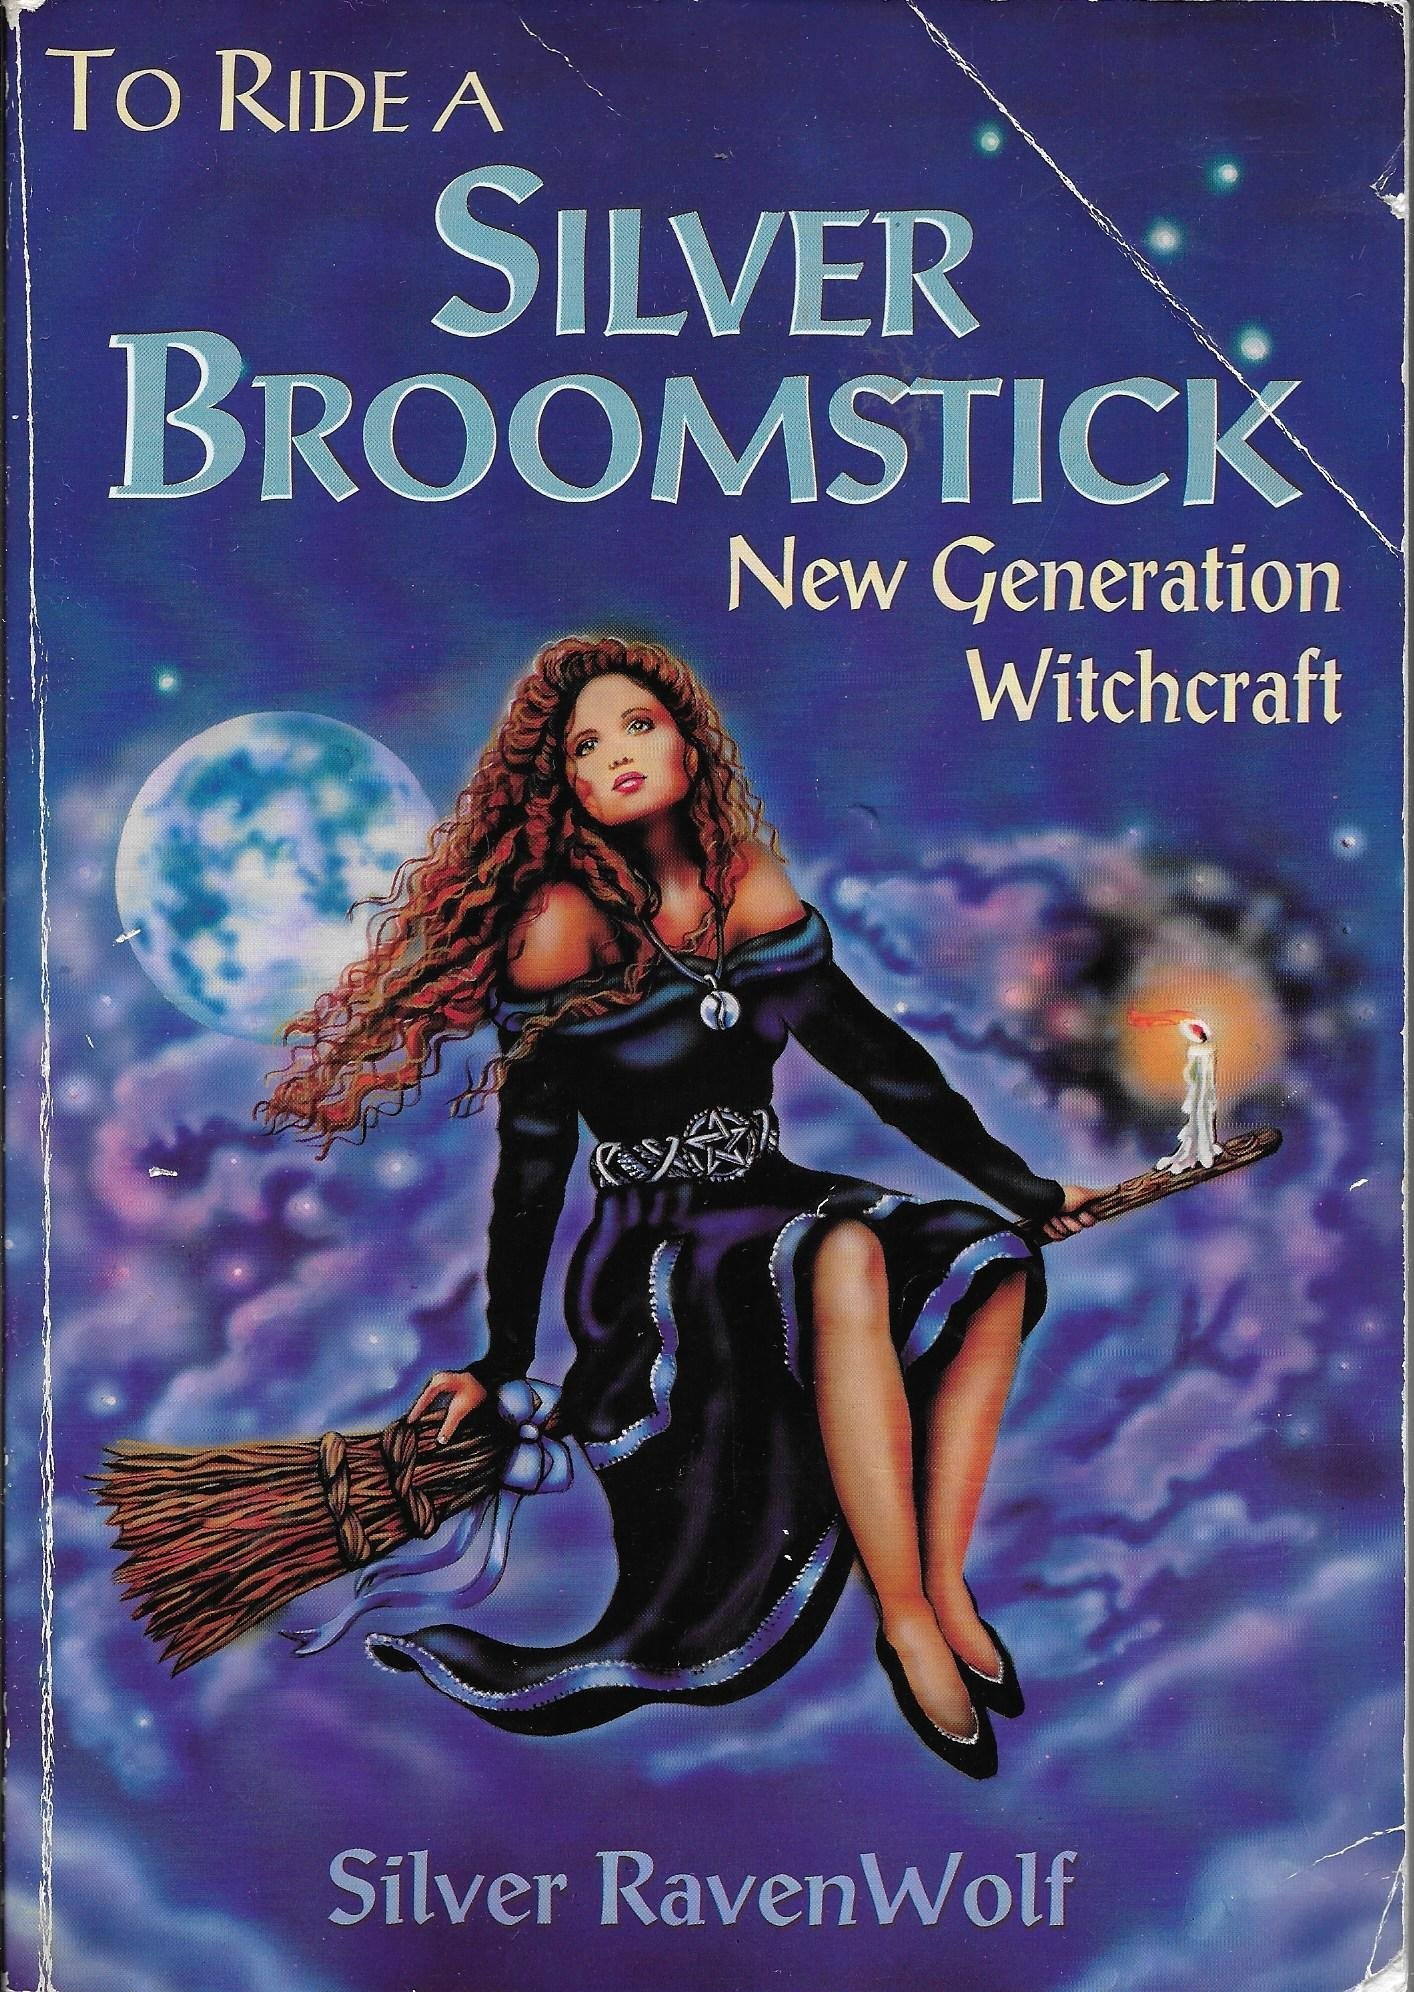 To Ride a Silver Broomstick New Generation Witchcraft Amazon.com ...